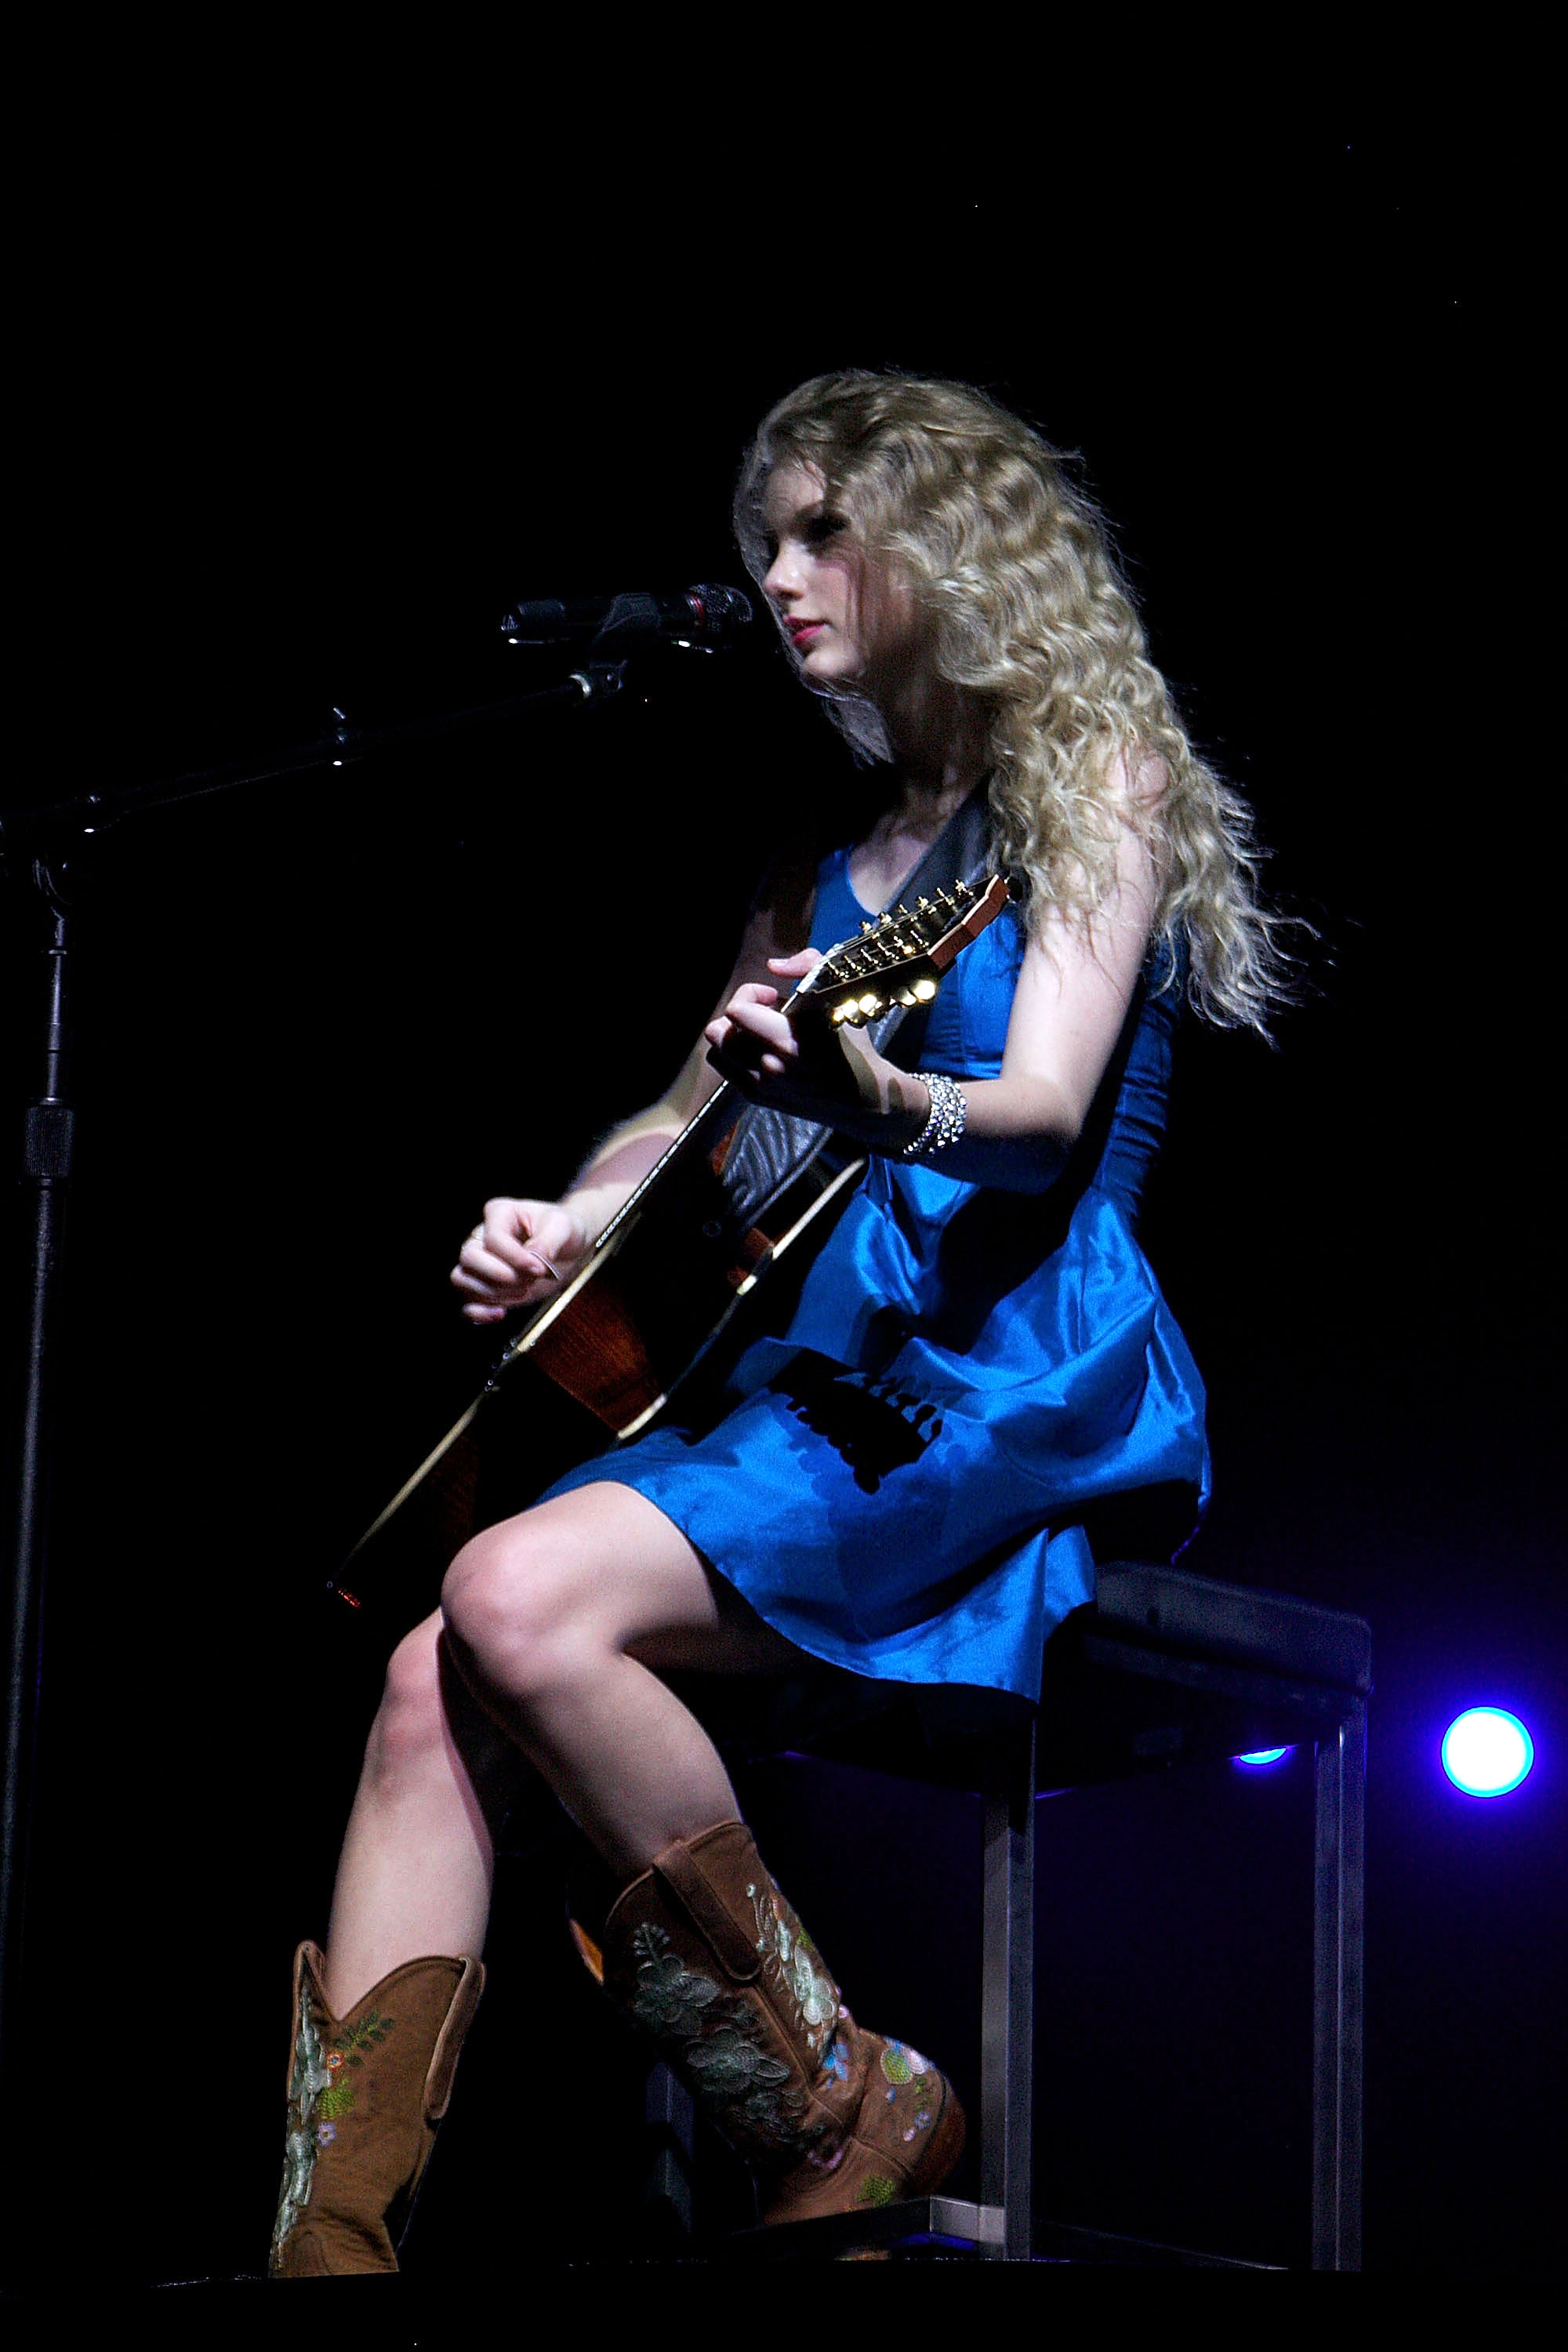 32664_Taylor_swift_performs_her_Fearless_Tour_at_Tiger_Stadium_036_122_80lo.jpg